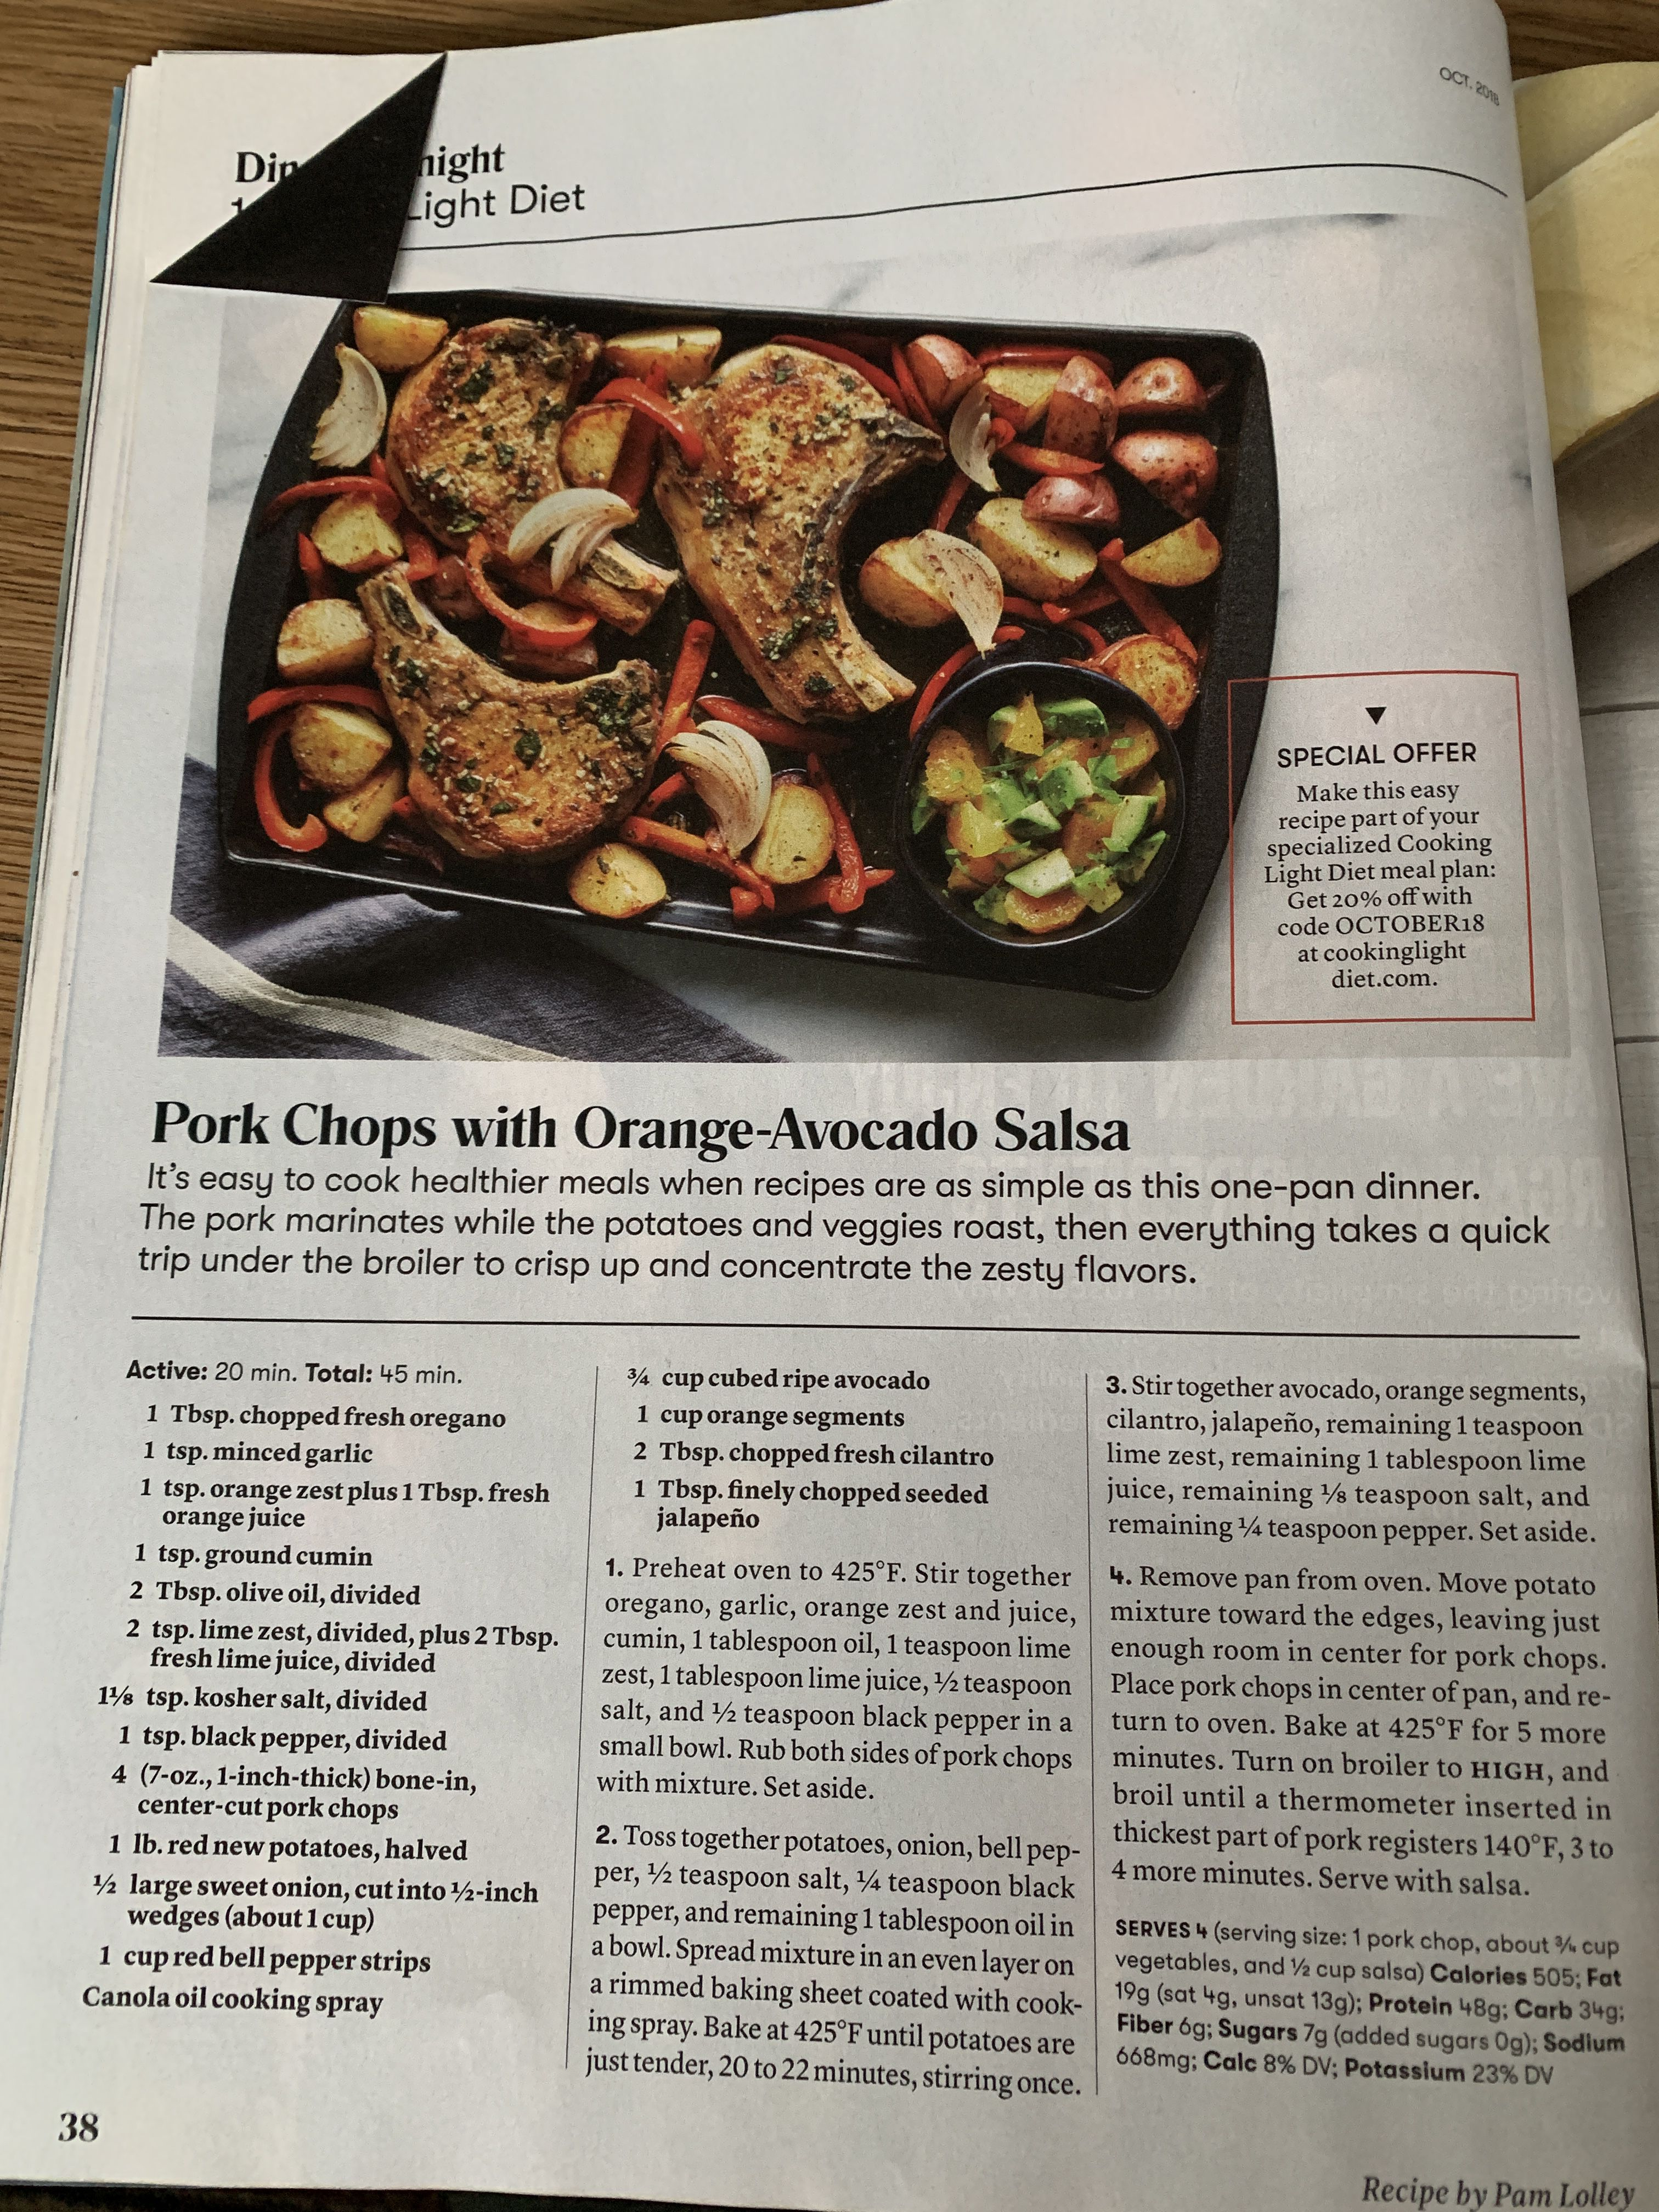 Pin By Camille Harding On Recipes Healthy Meals To Cook Cooking Light Diet Cooking Light